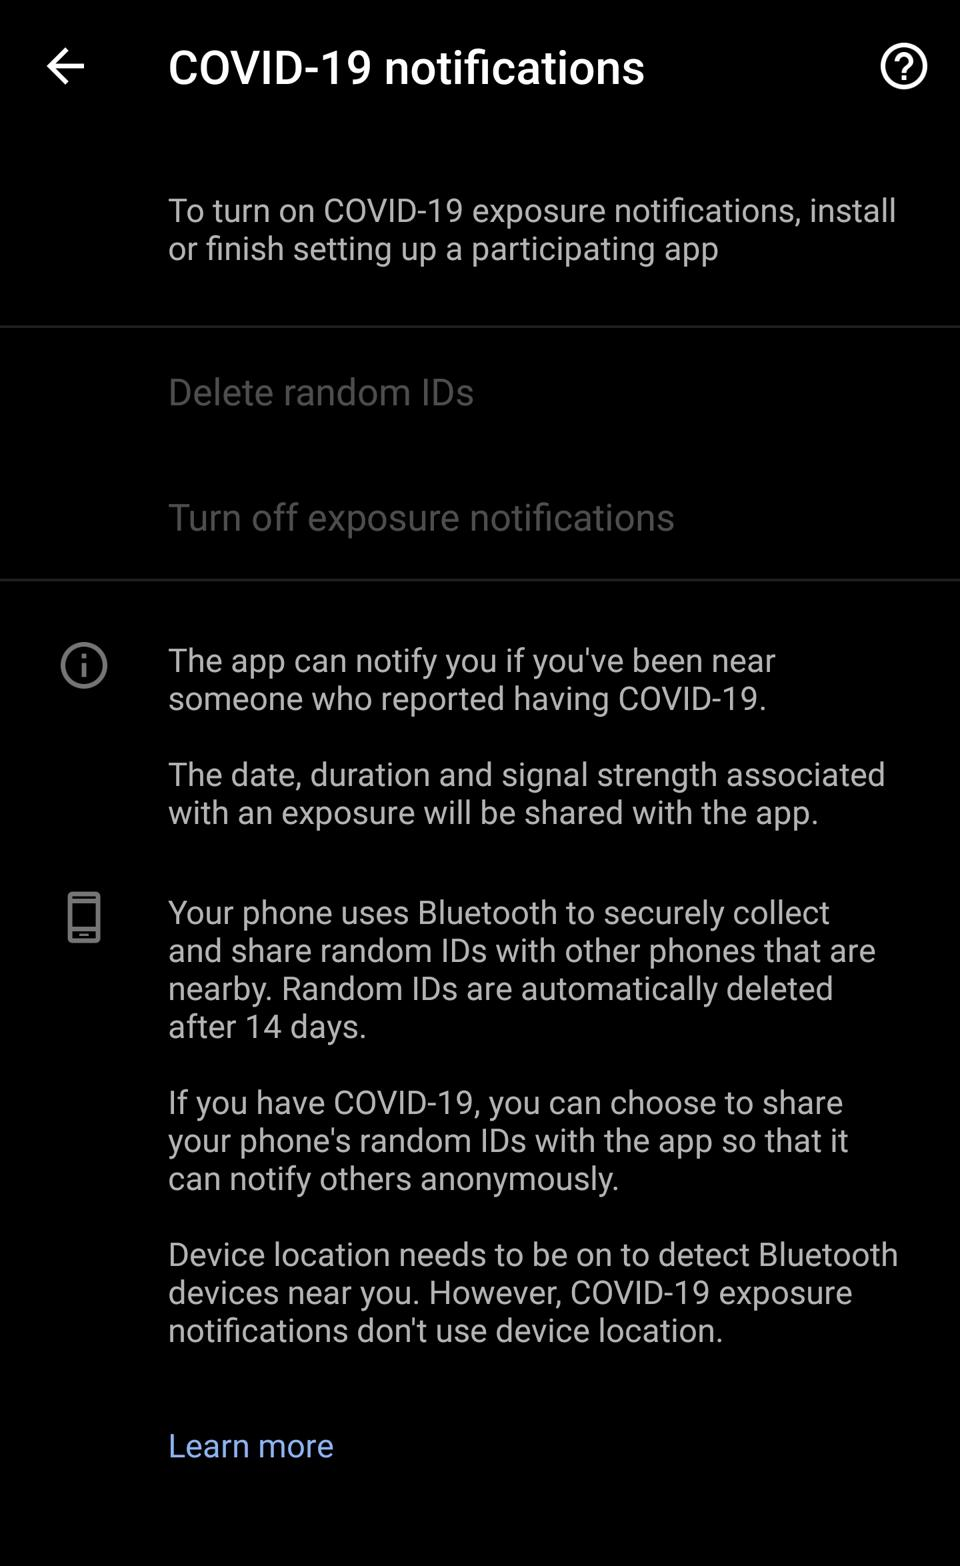 Another Android screenshot showing status of COVID-19 exposure notifications